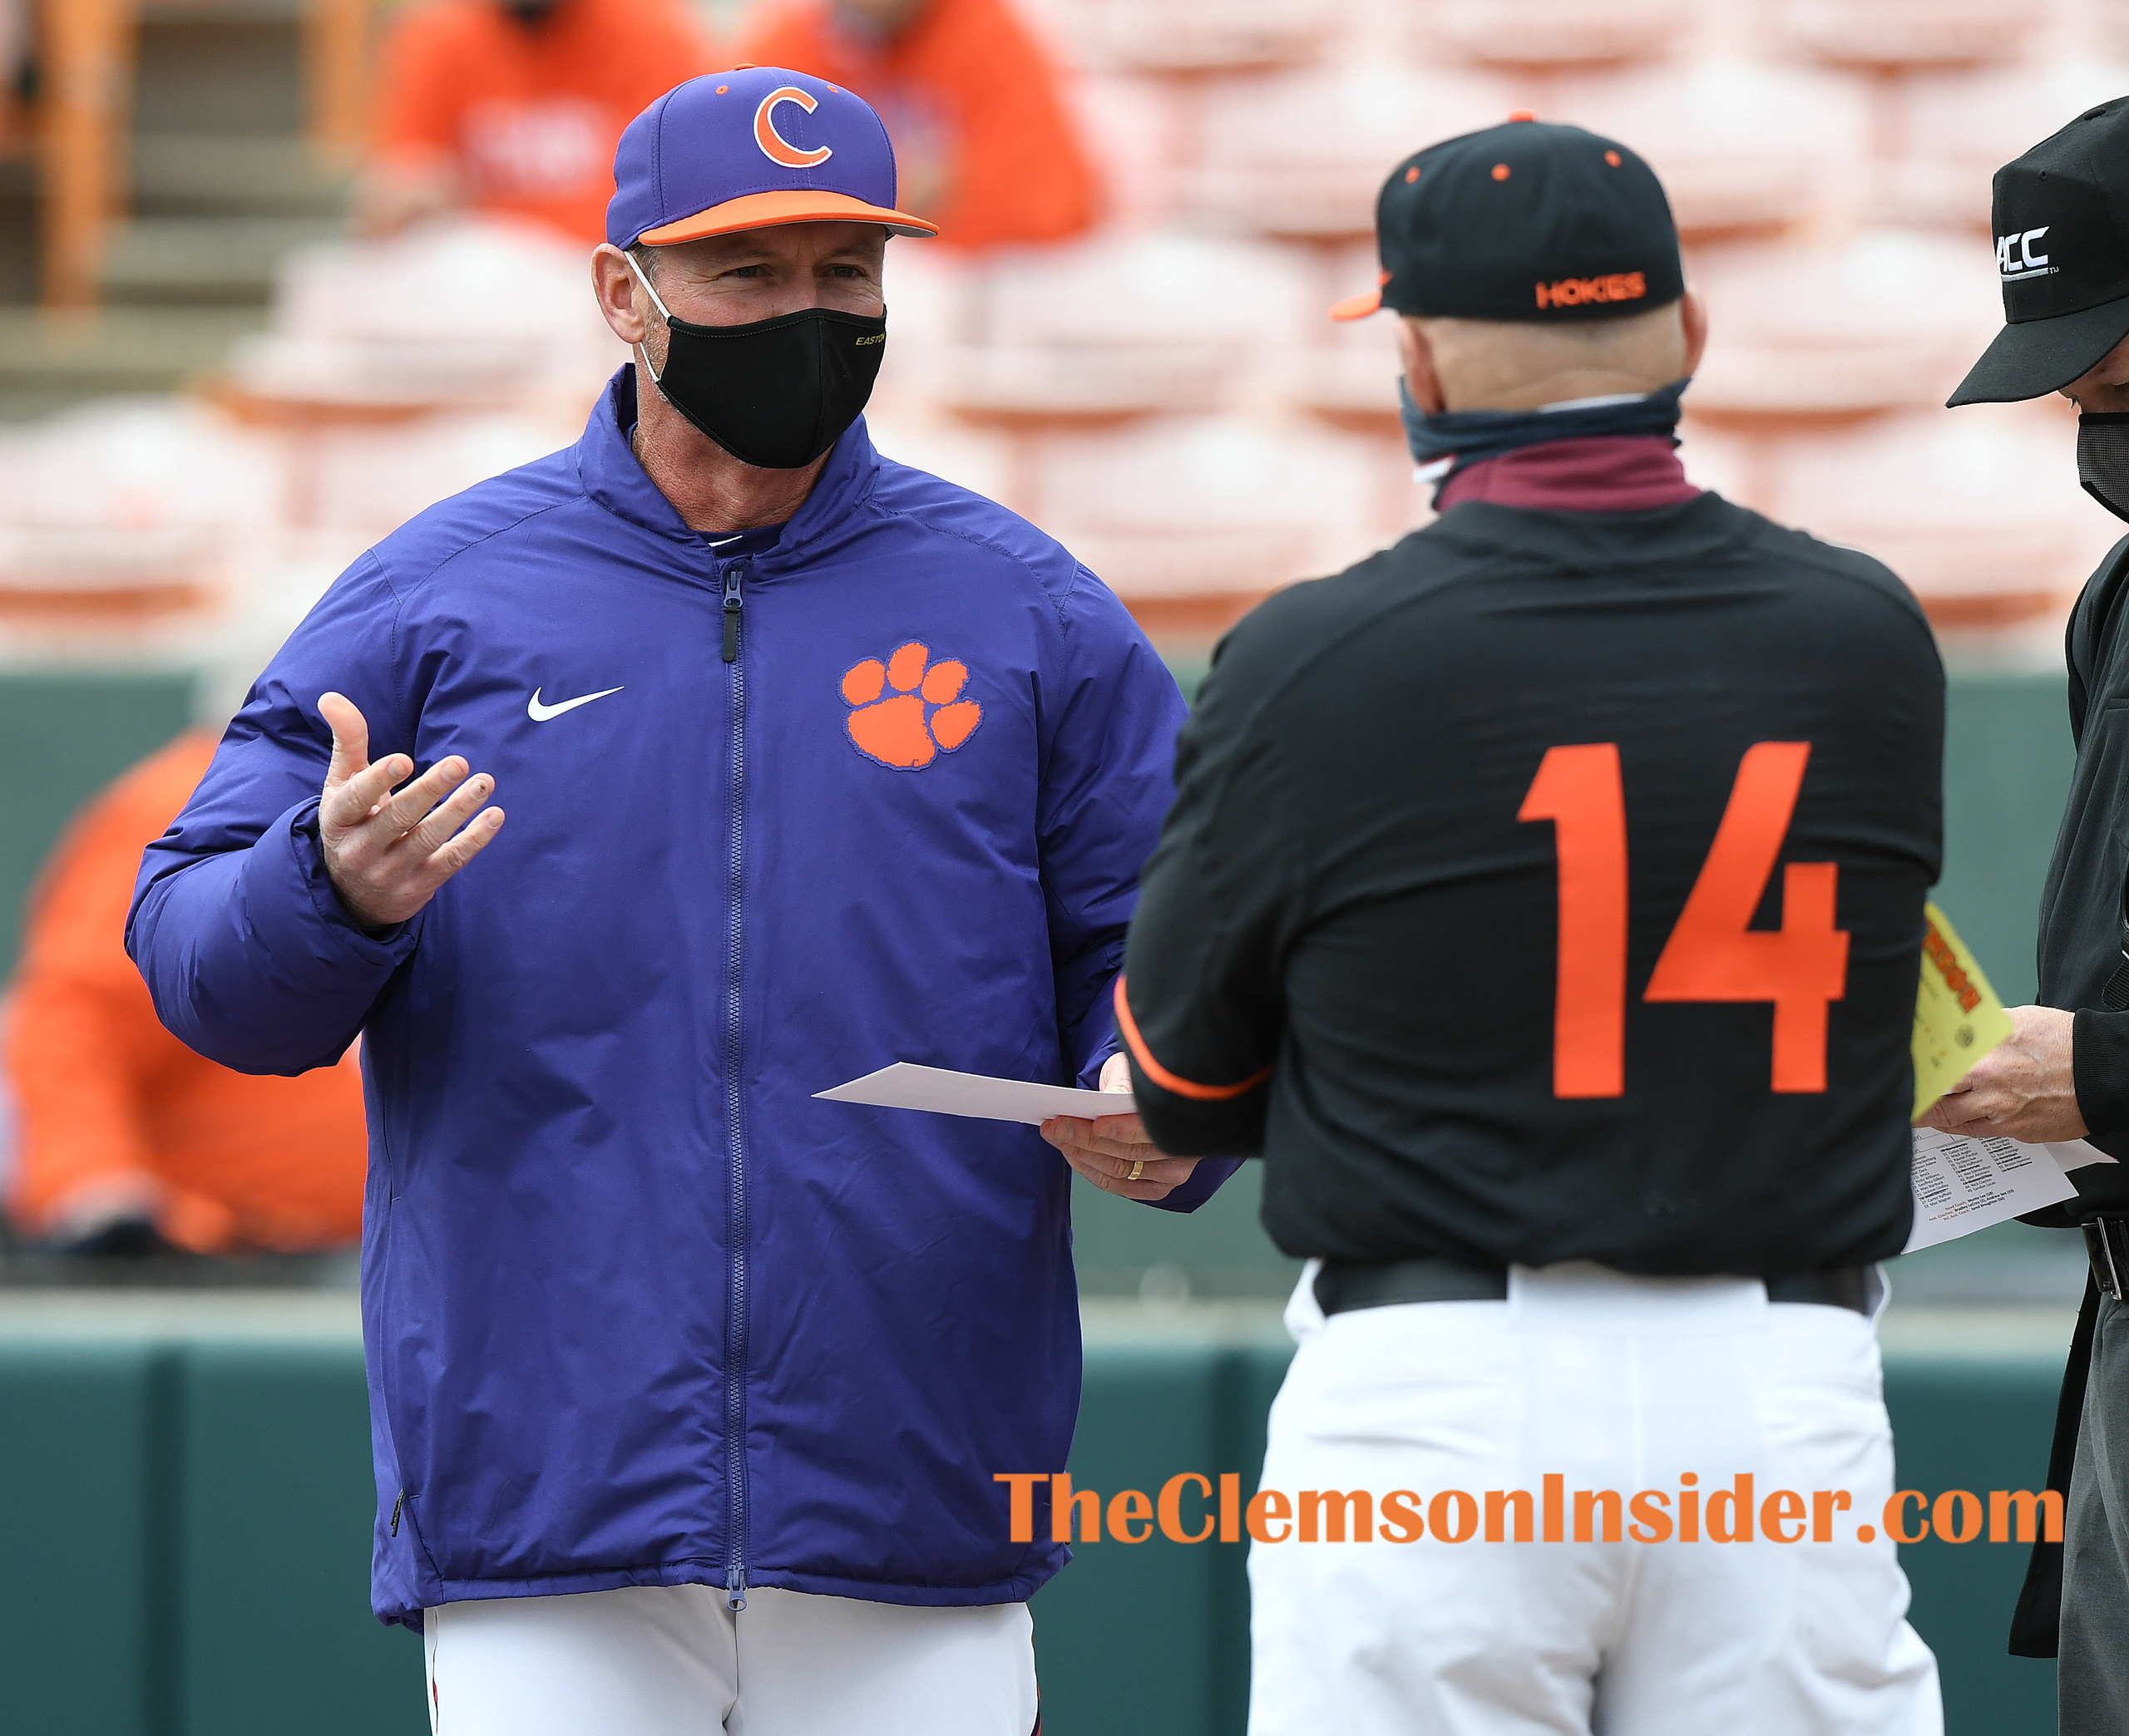 Clemson head coach Monte Lee (18) meets with Virginia Tech head coach Corey Haines at home plate before their game Friday, March 19, 2021 at Clemson's Doug Kingsmore Stadium. Bart Boatwright/The Clemson Insider